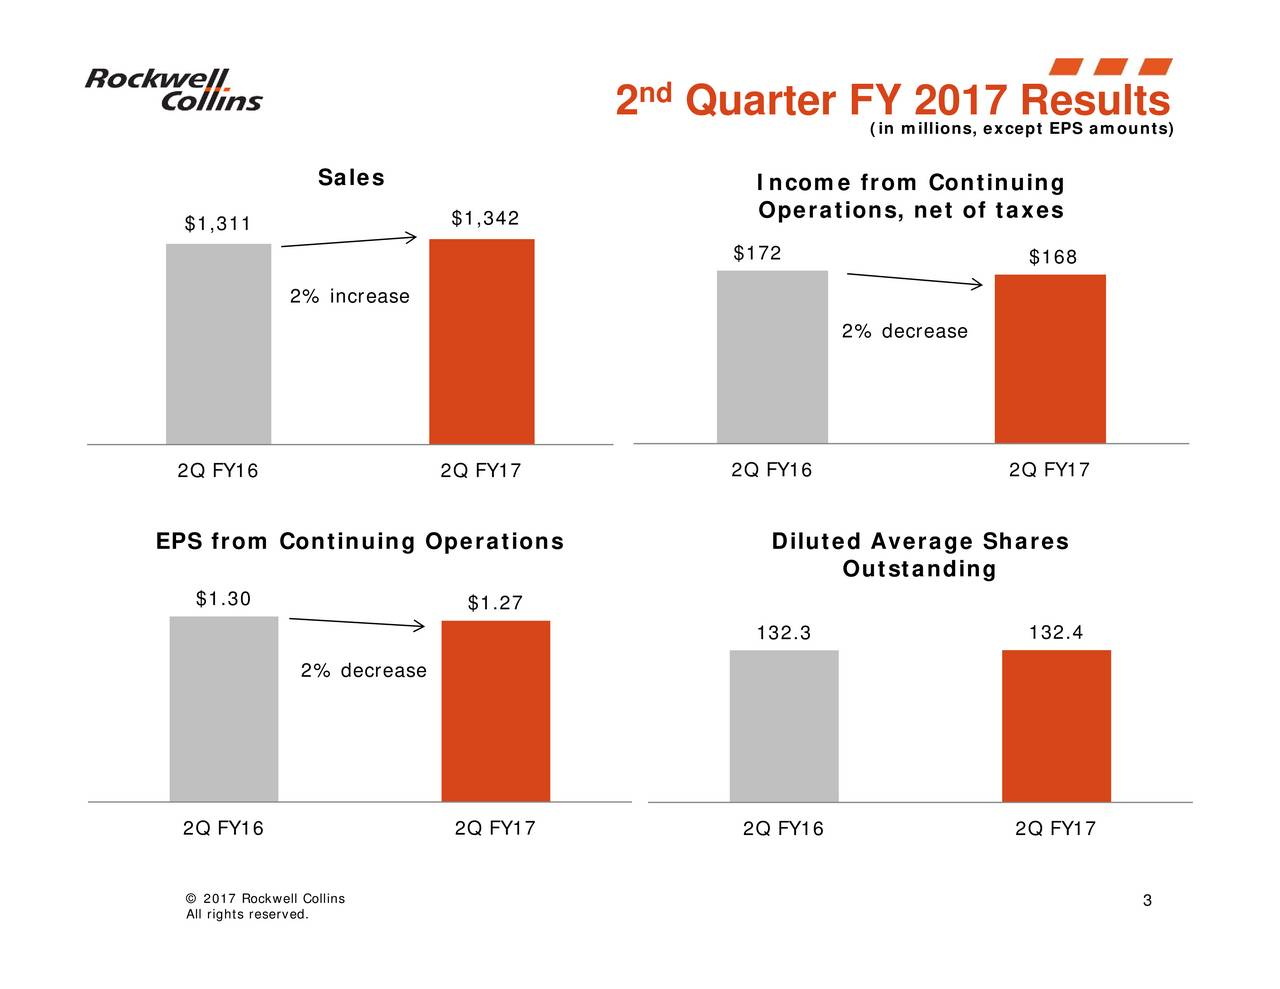 $168 132.4 (in millions, except EPS amounts) 2% decrease Outstanding Diluted Average Shares Income from Continuingtaxes 132.3 $172 2Q FY16 2Q FY16 2Q FY17 Quarter FY 2017 Results nd 2 $1.27 $1,342 Sales 2% increase 2% decrease $1.30 $1,311 2Q FY16 2Q FY17 2Q FY16 2lgRscreledl.lins EPS from Continuing Operations